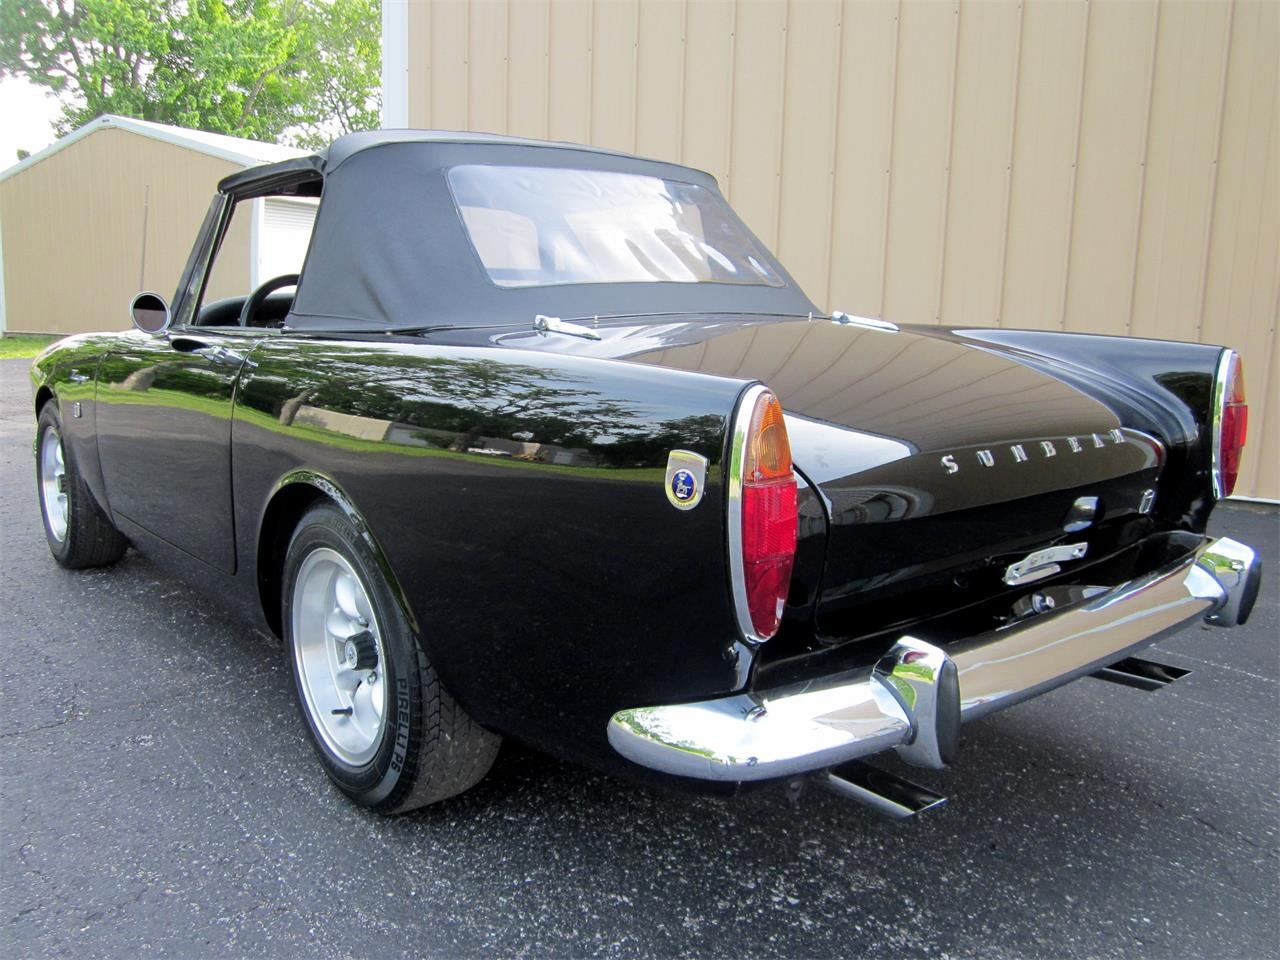 Large Picture of '66 Sunbeam Tiger located in Rochester New York - $49,500.00 Offered by a Private Seller - QEKO